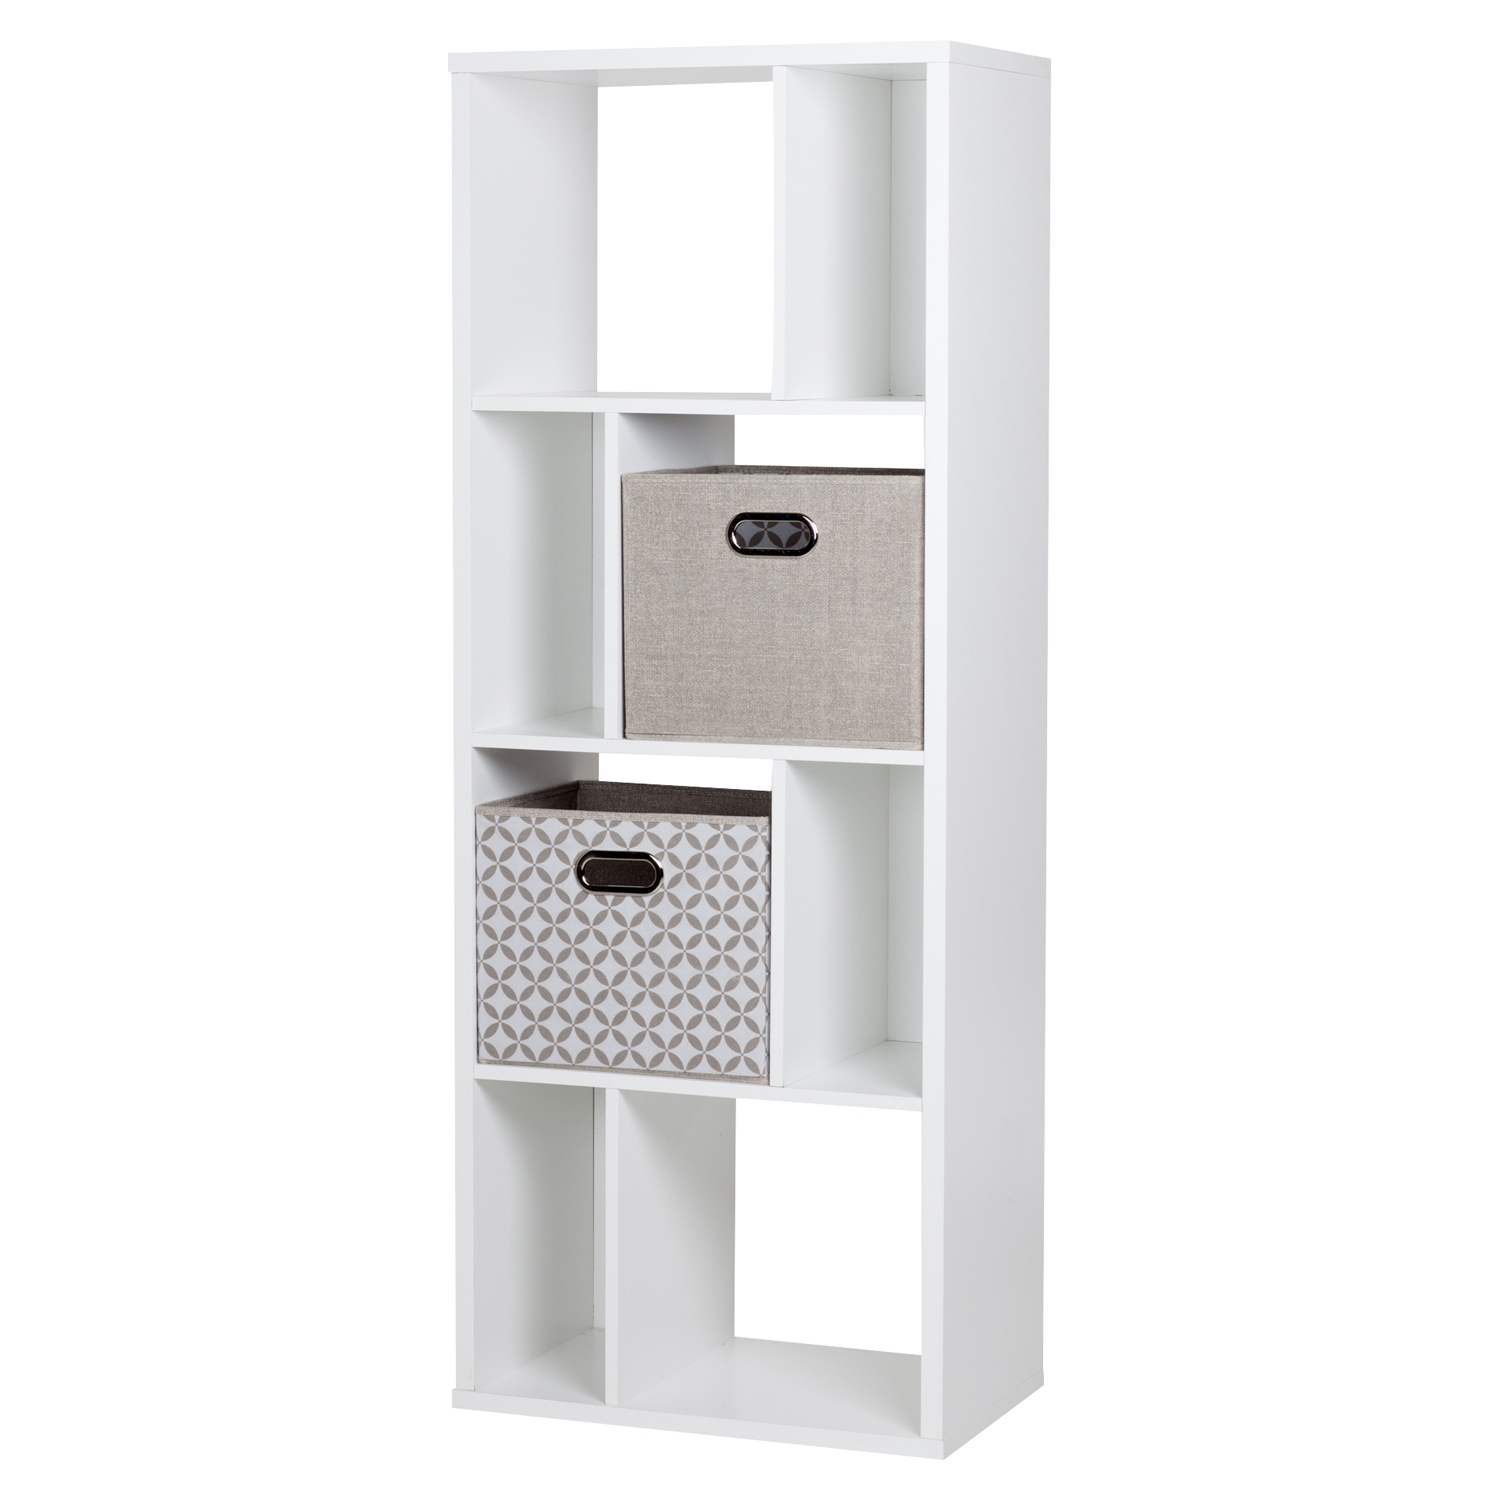 Reveal 8 Cubes Shelving Unit - 2 Fabric Storage Baskets, Pure White - SS-8050154K